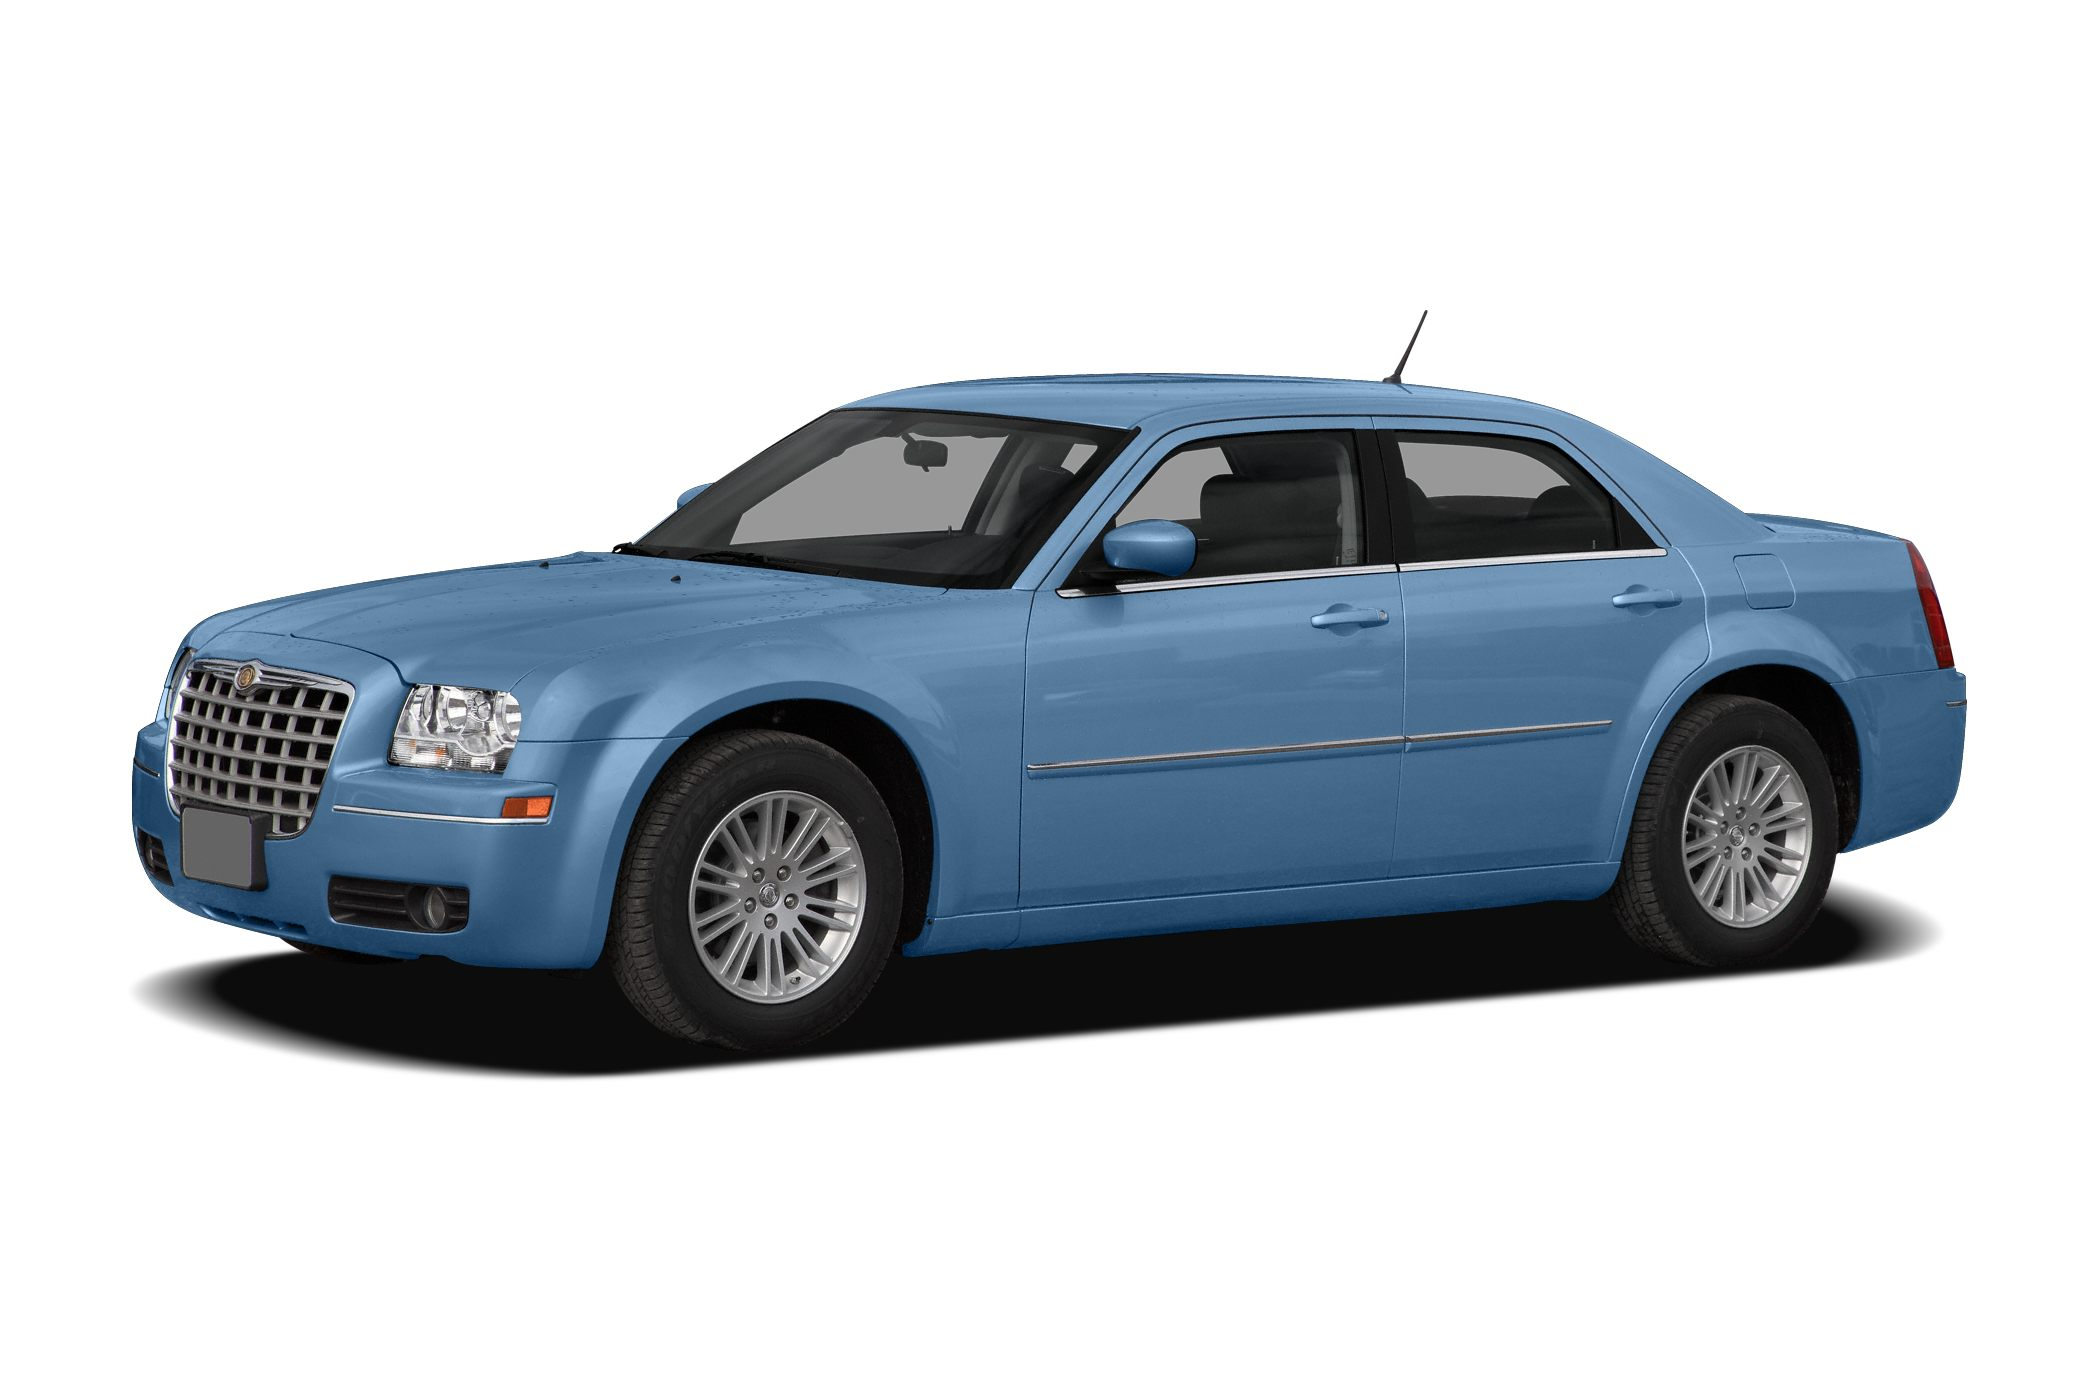 2008 Chrysler 300 Touring Touring trim 12000 Mile Warranty CARFAX 1-Owner LOW MILES - 66978